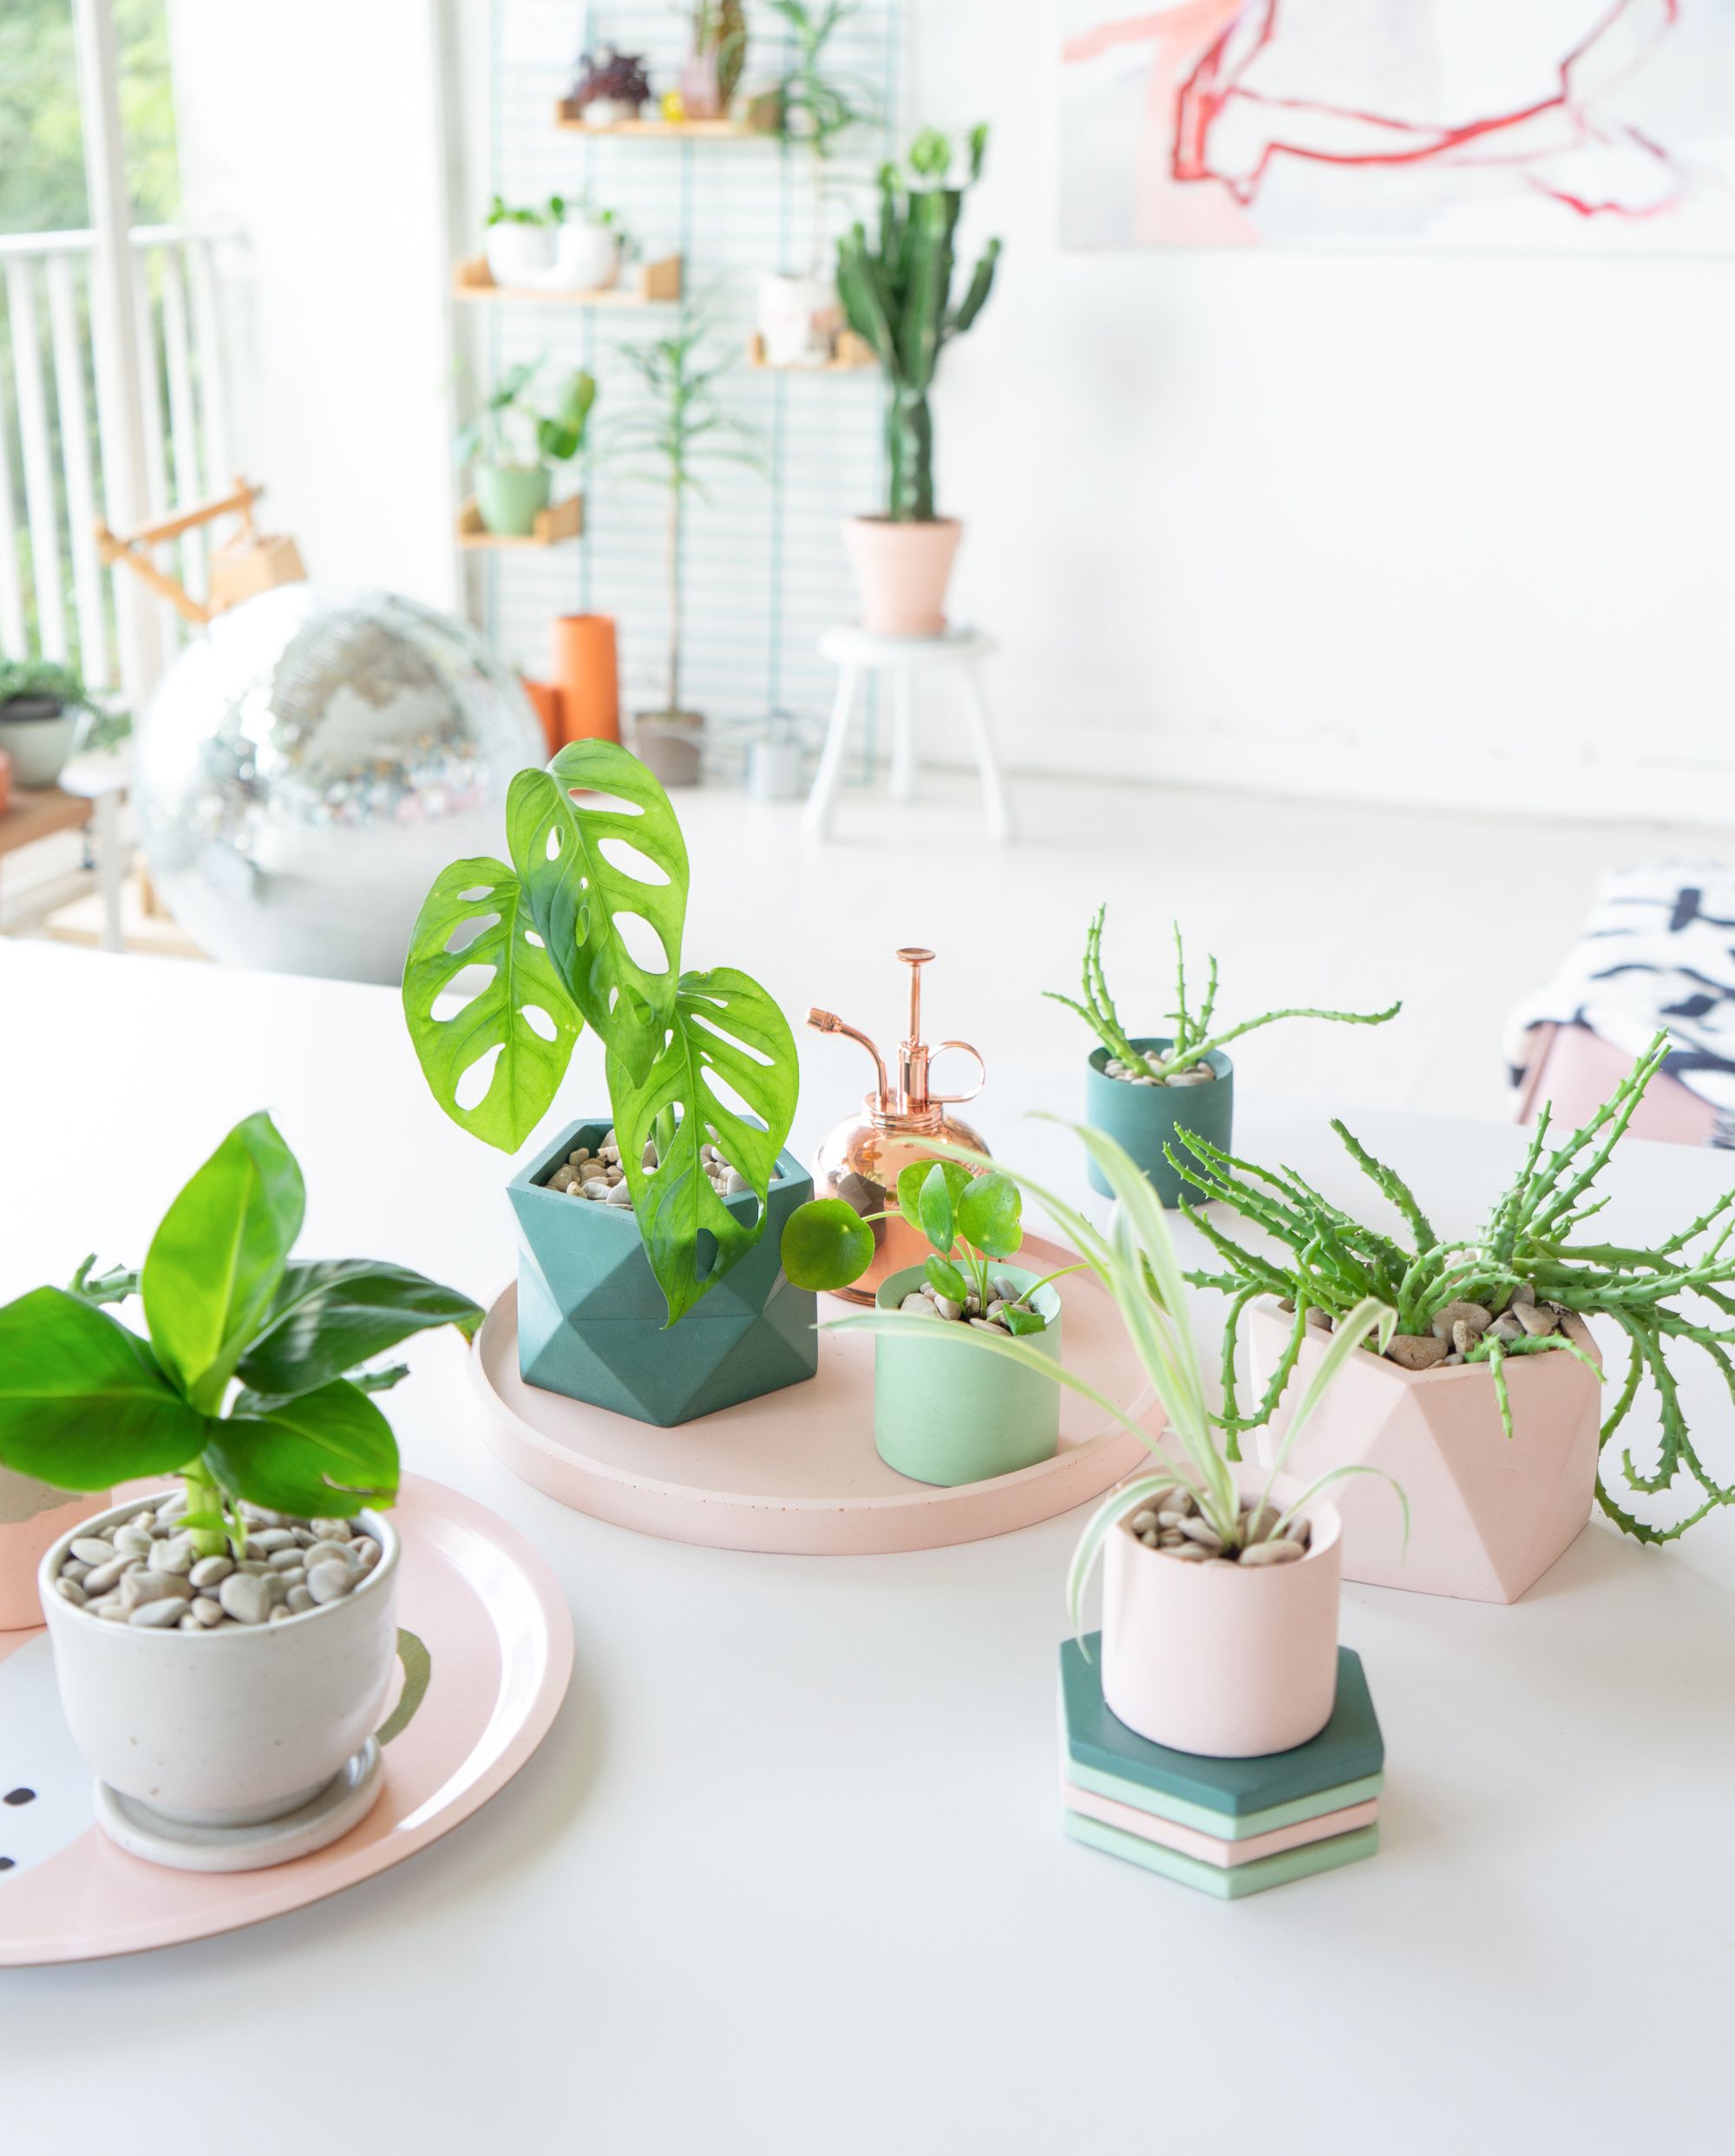 JOELIX.com | Pastel Paradise with concrete pots by House Raccoon #urbanjunglebloggers #houseraccoon #concretepots